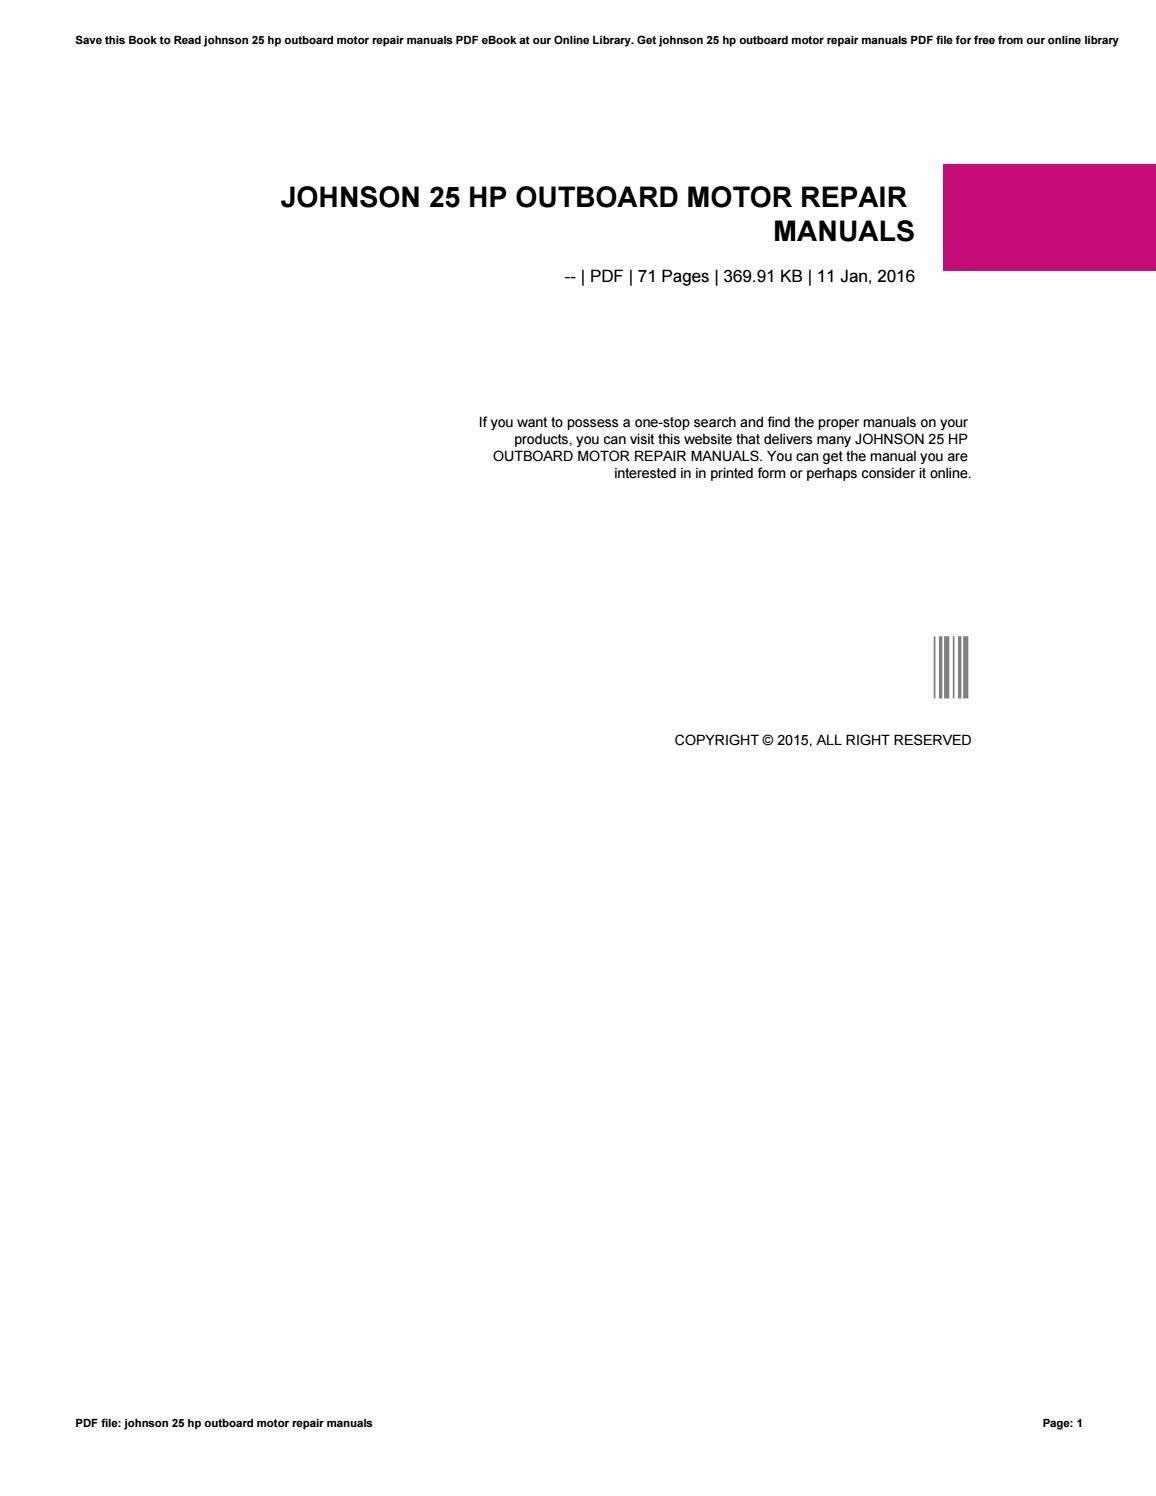 Johnson 25 hp outboard manual ebook array johnson 25 hp outboard motor repair manuals by c1oramn816 issuu rh issuu fandeluxe Choice Image